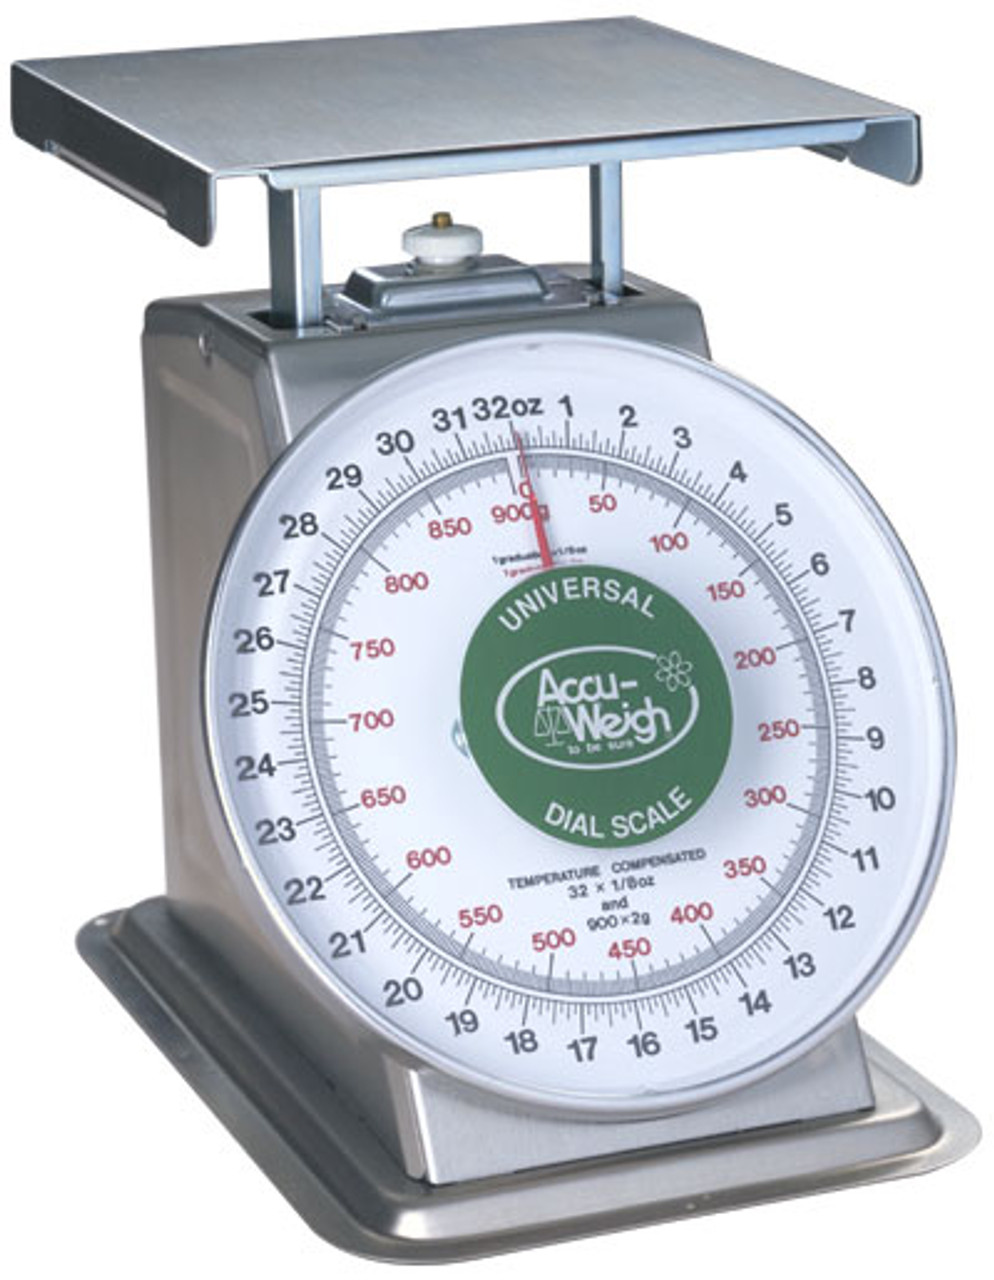 Accu-Weigh SM(N)-28PK - Portion Control Scale - 32oz. x 1/8oz.